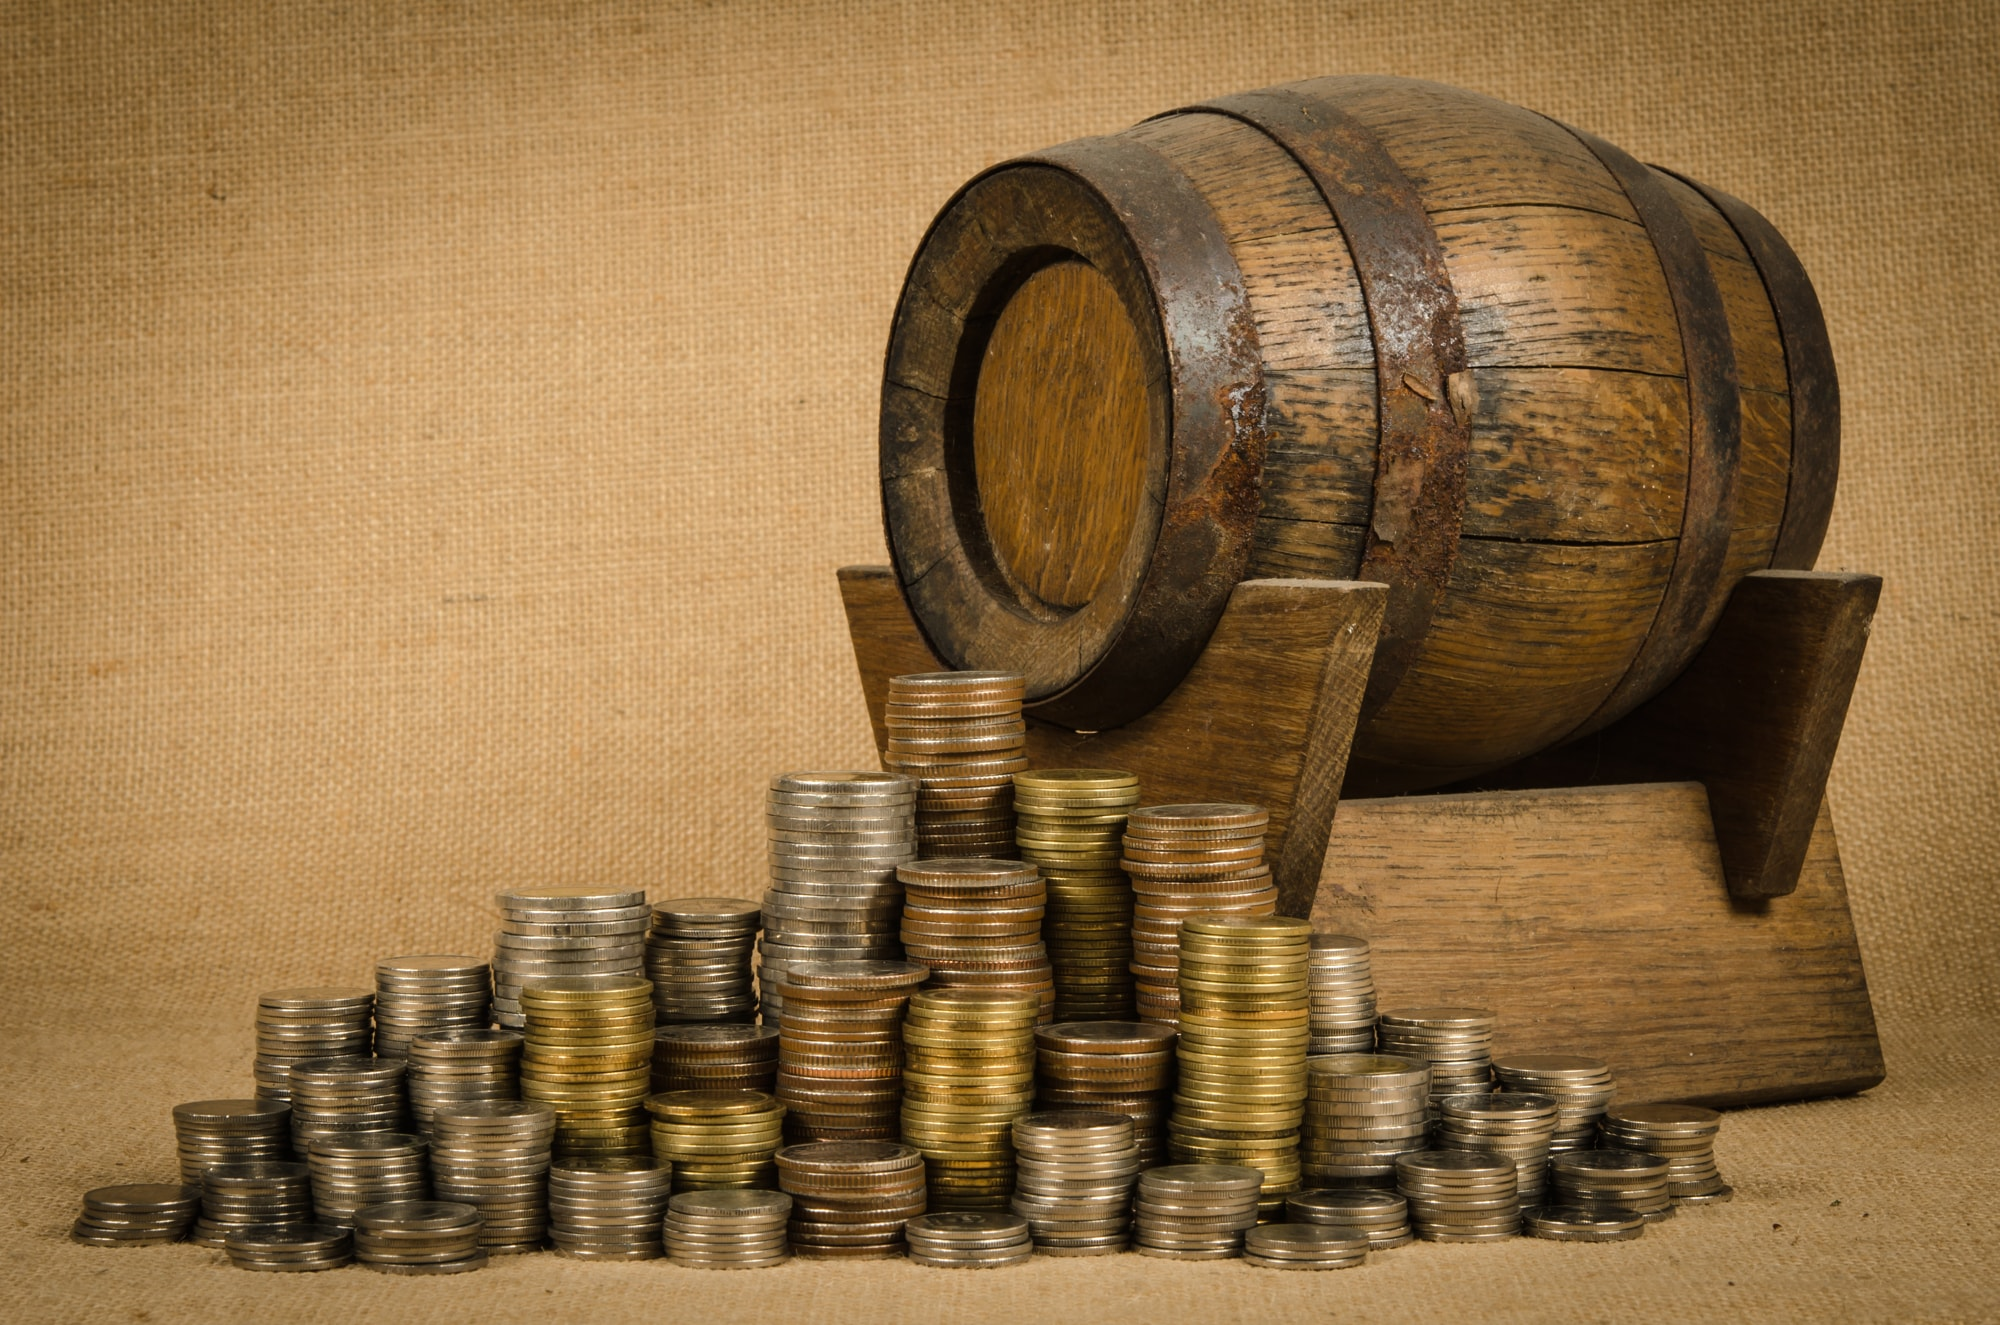 Achieve High Returns by Investing in Maturing Scotch Whisky